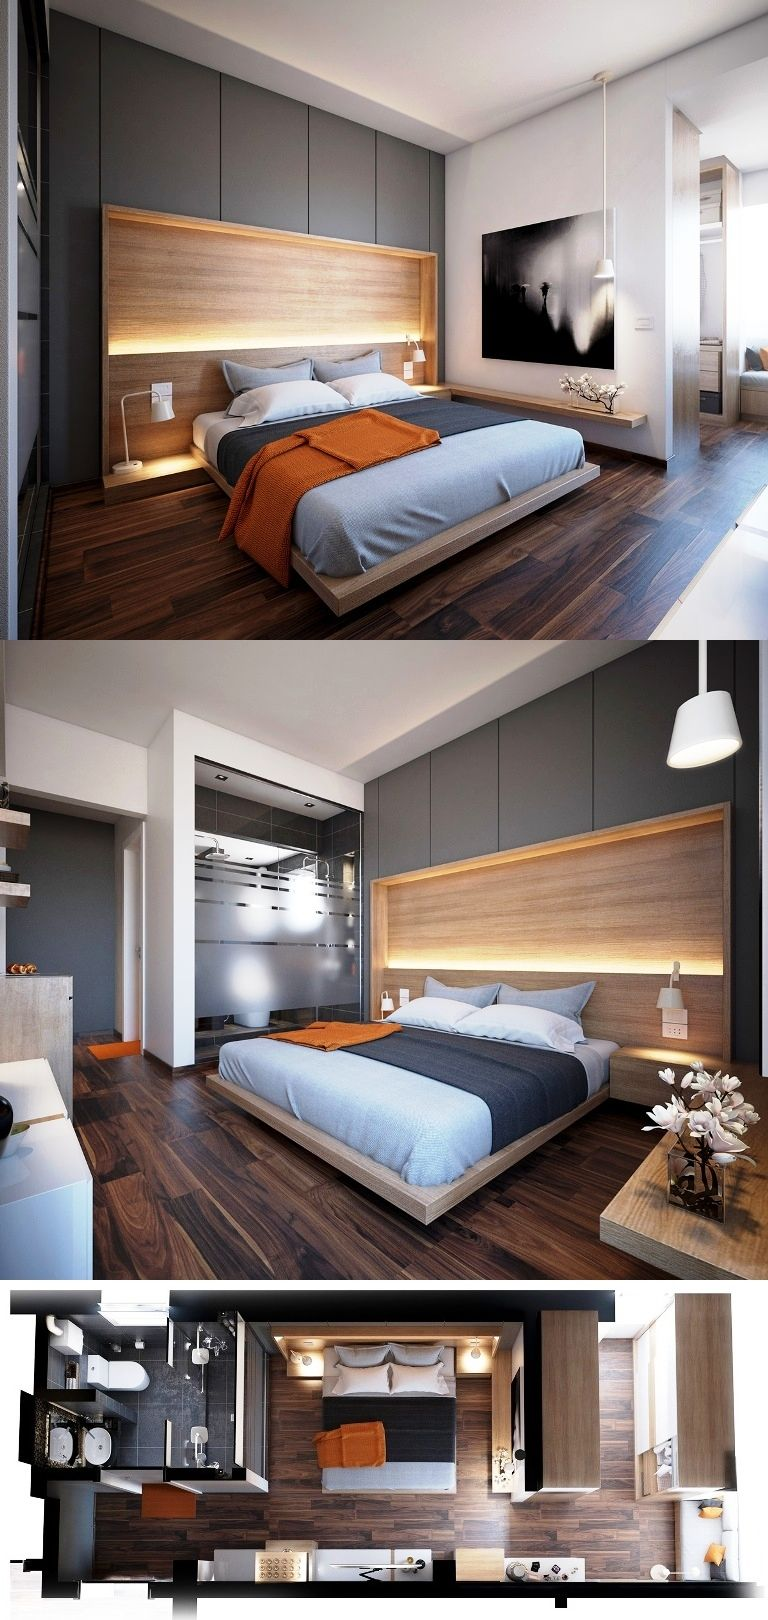 4 Luxury Bedrooms With Unique Wall Details Bedroom Bed Design